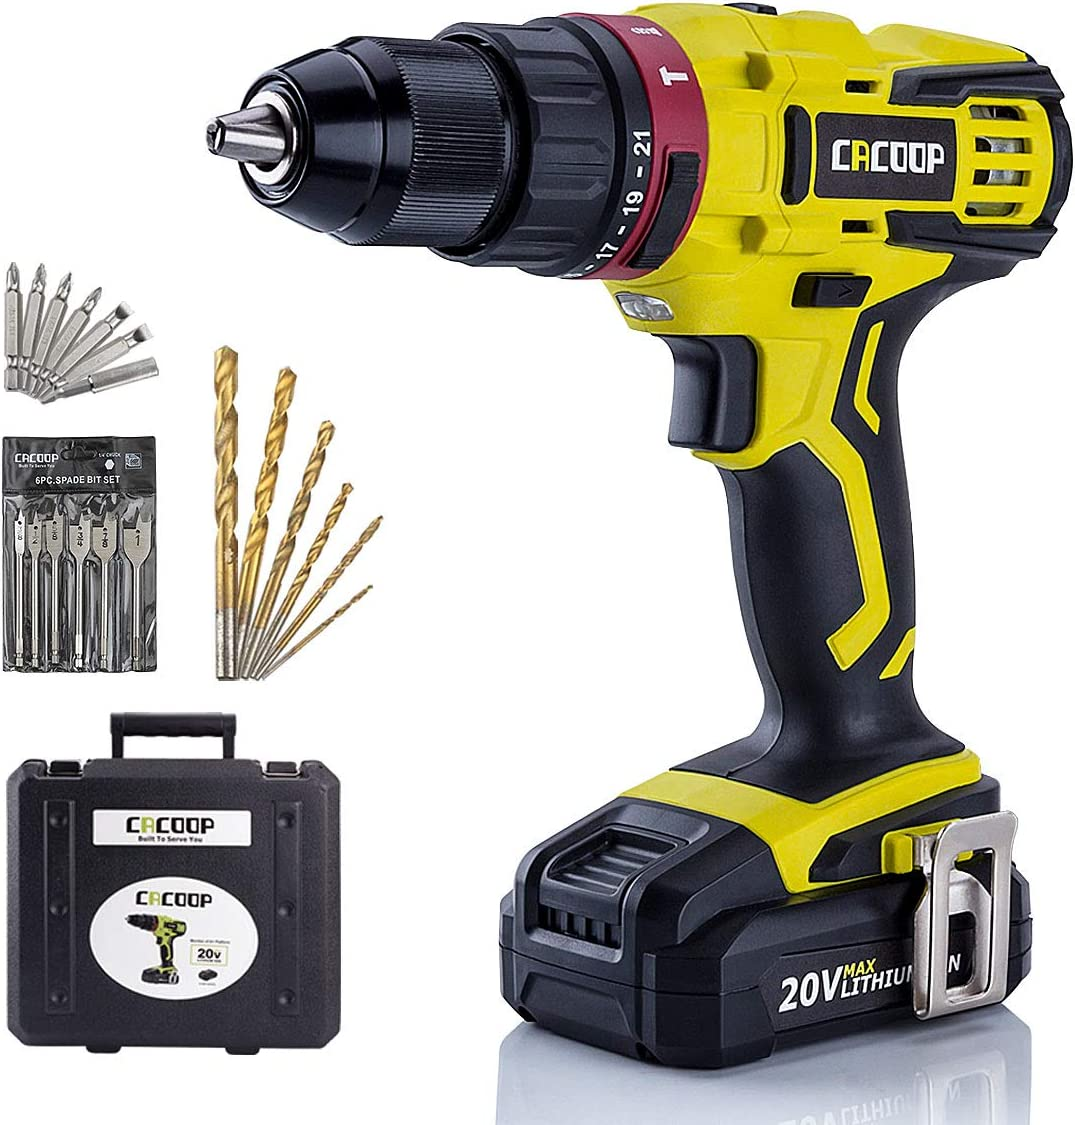 CACOOP Cordless Hammer Drill Driver Set, 20V Compact Drill with Lithium-ion Battery and Charger, 1 2 inch All-Metal Chuck, 2 Variable Speed, Wood Drill and Screwdriver Bits, Magnetic Bit Holder